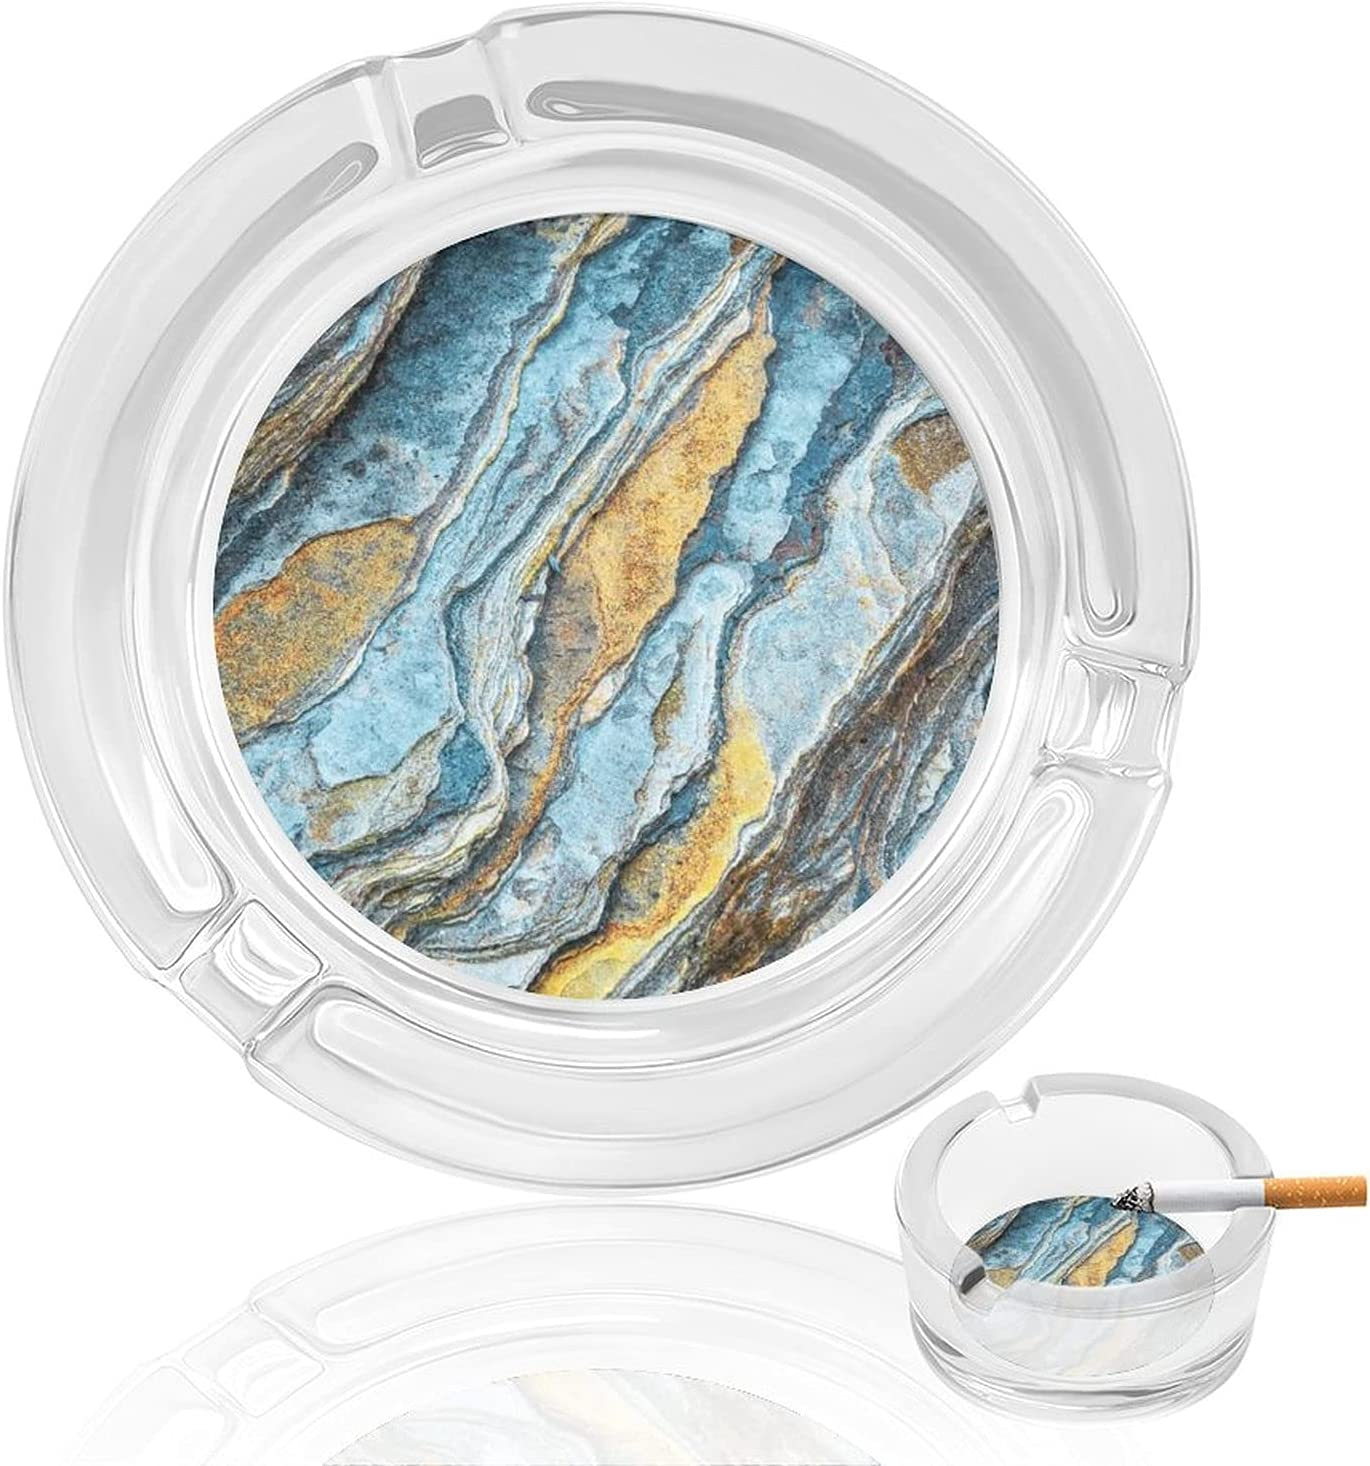 Rocks Stacked Smoking Ashtray Glass Tray Ash Cigar New Orleans Mall Cus Cigarette Raleigh Mall